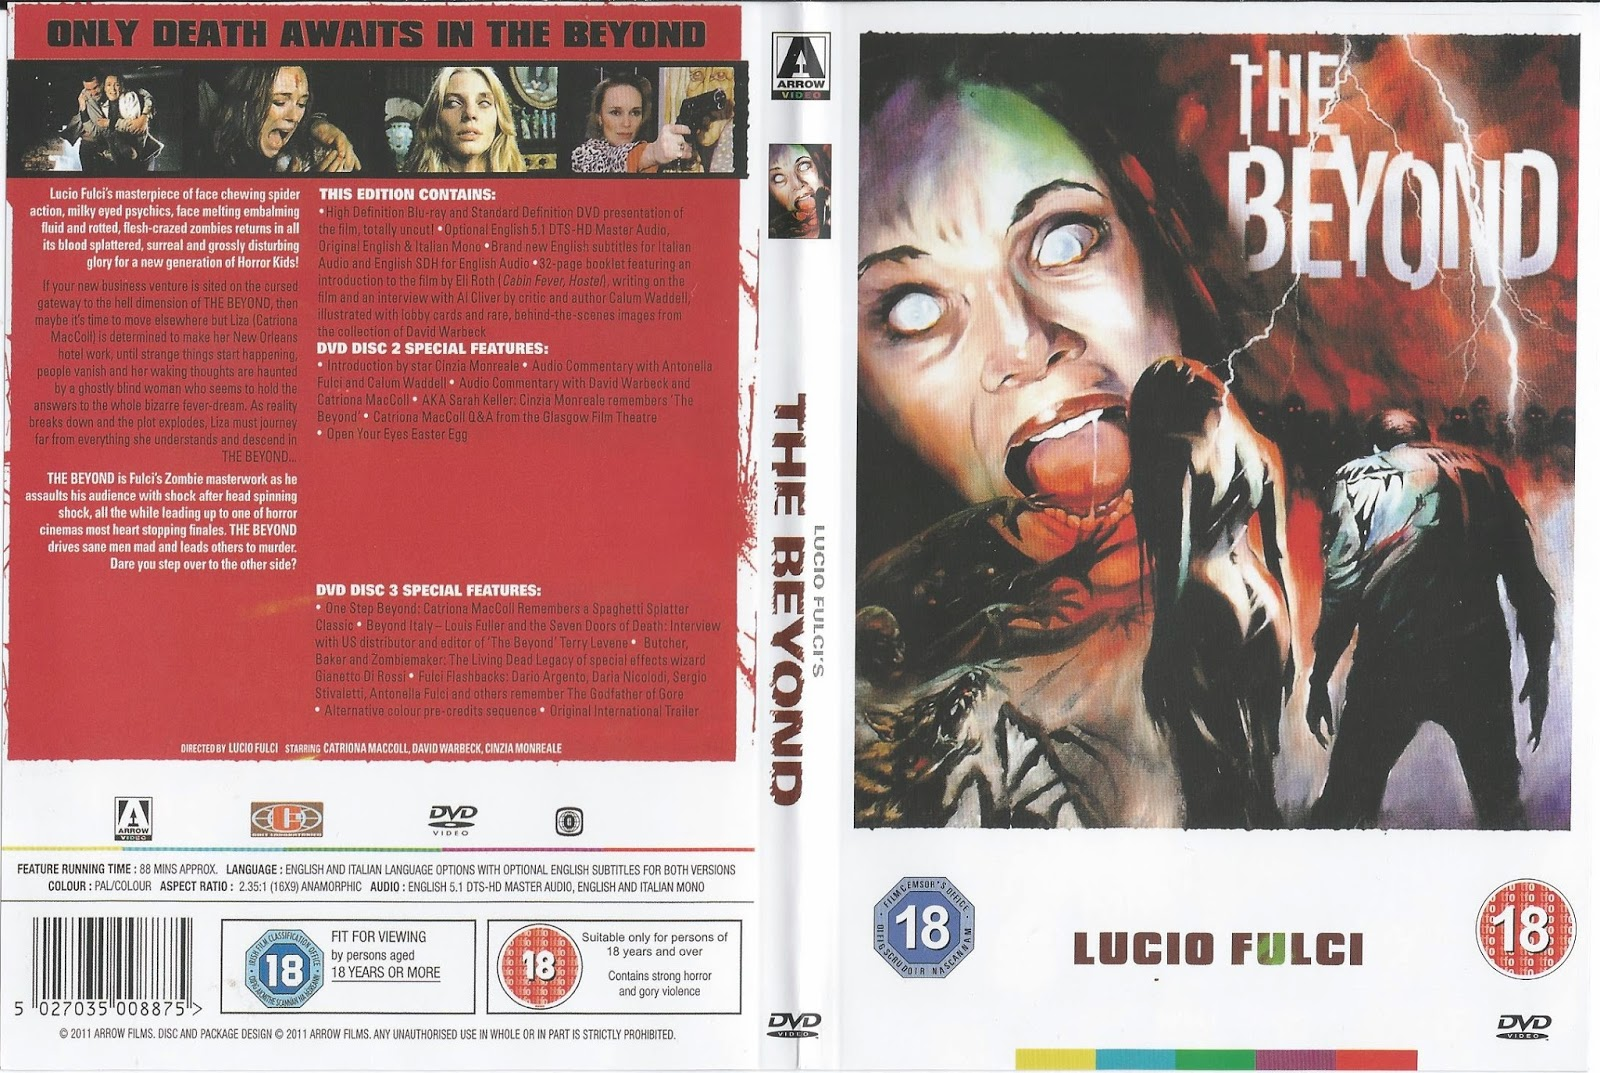 THE BEYOND DVD COVER FRONT